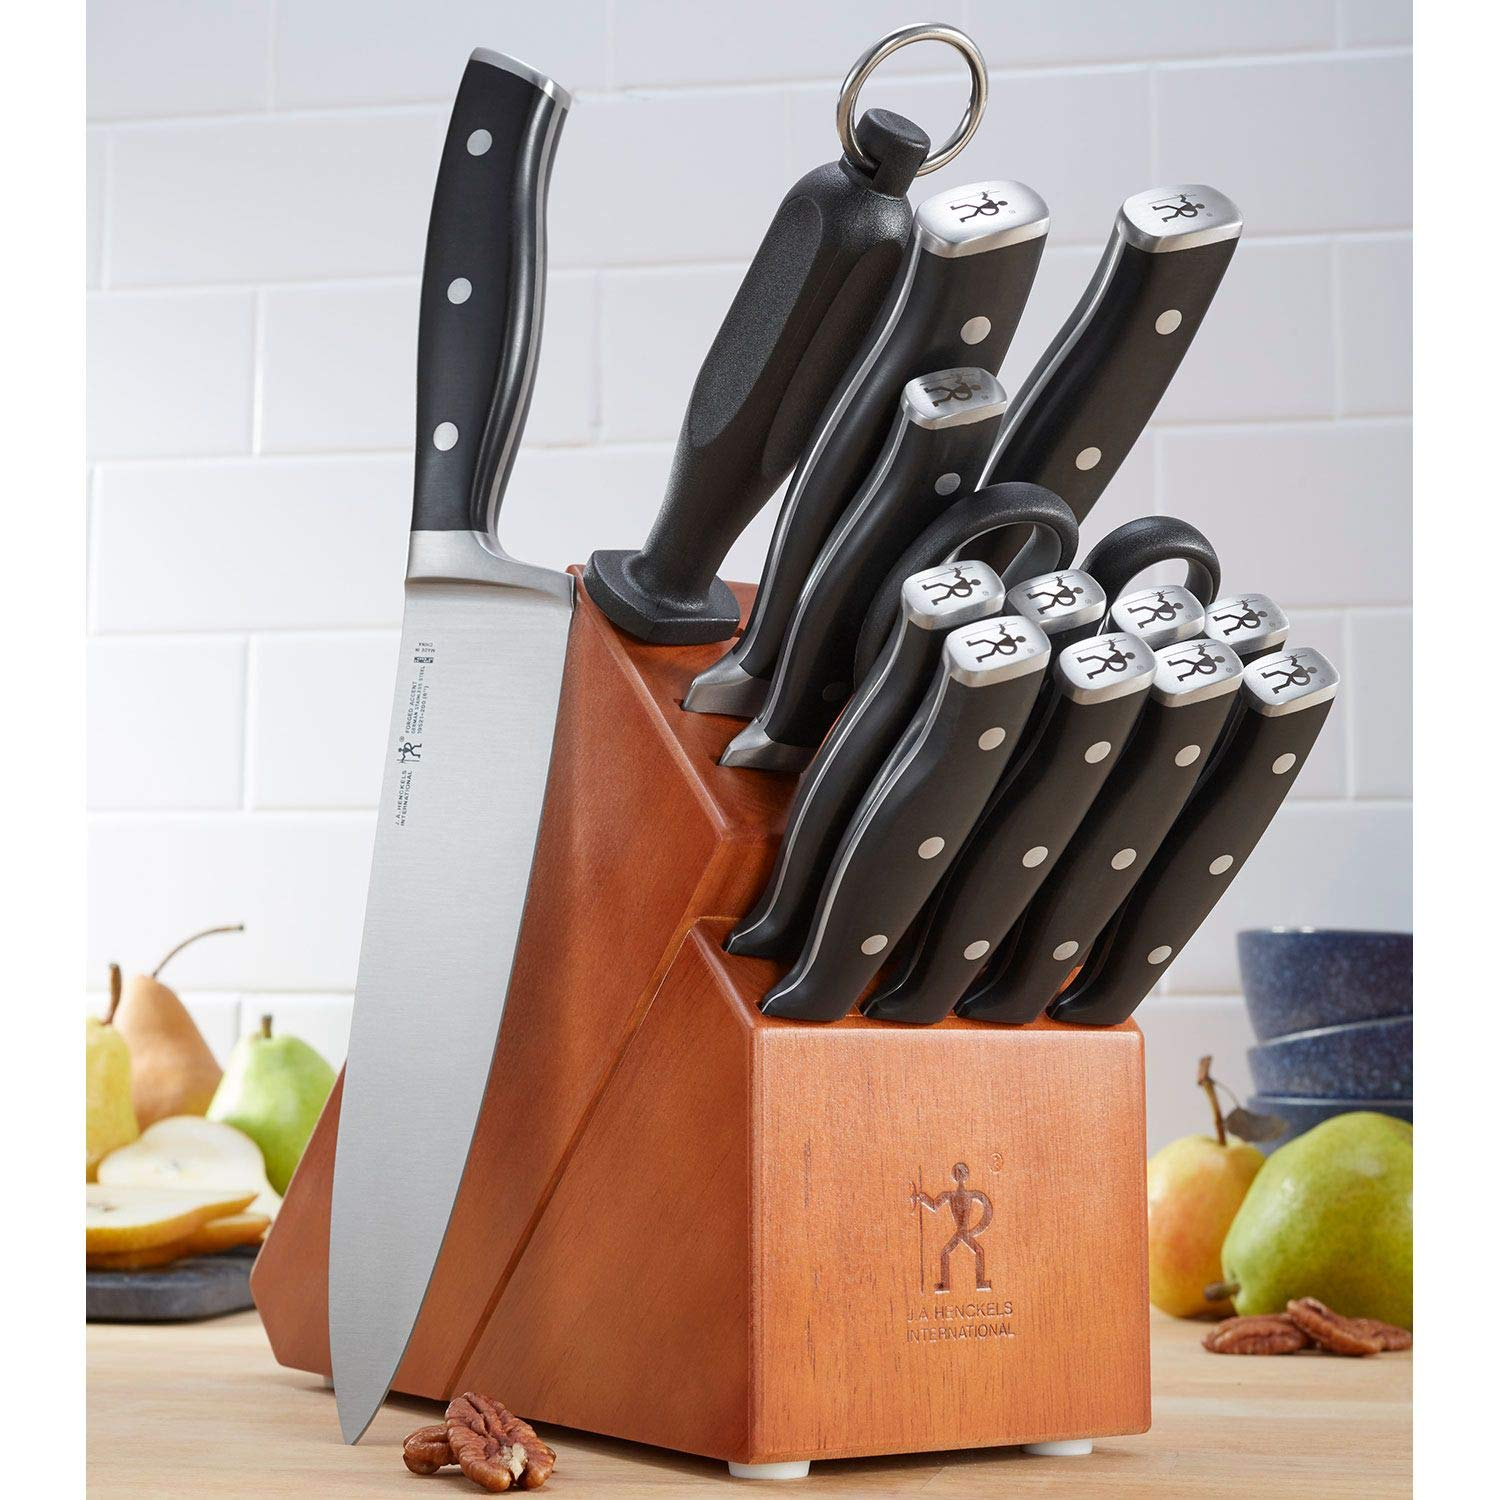 Zwilling J.A. Henckels 15-Piece Knife Set | High-Carbon German Stainless Steel Cutlery Set with Block and Sharpener by ZWILLING J.A. Henckels (Image #3)